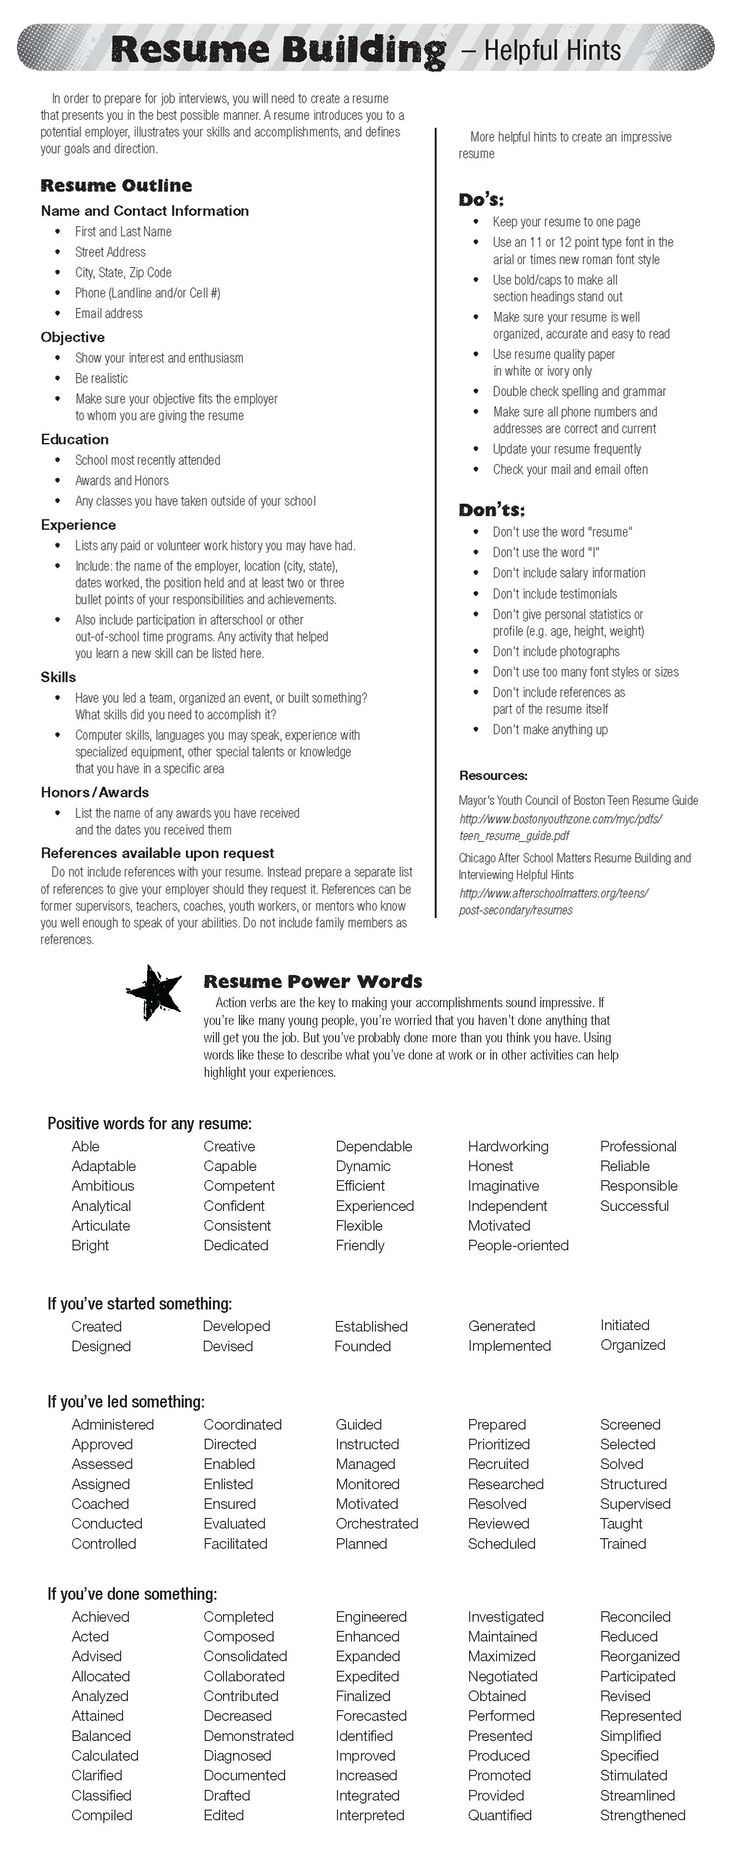 Opposenewapstandardsus  Pretty  Ideas About Resume On Pinterest  Cv Format Resume Cv And  With Entrancing  Ideas About Resume On Pinterest  Cv Format Resume Cv And Resume Templates With Divine Free Downloadable Resume Also Entry Level Human Resources Resume In Addition Examples Of Resumes With No Experience And Summer Camp Counselor Resume As Well As Make Free Resume Online Additionally Skills For A Job Resume From Pinterestcom With Opposenewapstandardsus  Entrancing  Ideas About Resume On Pinterest  Cv Format Resume Cv And  With Divine  Ideas About Resume On Pinterest  Cv Format Resume Cv And Resume Templates And Pretty Free Downloadable Resume Also Entry Level Human Resources Resume In Addition Examples Of Resumes With No Experience From Pinterestcom